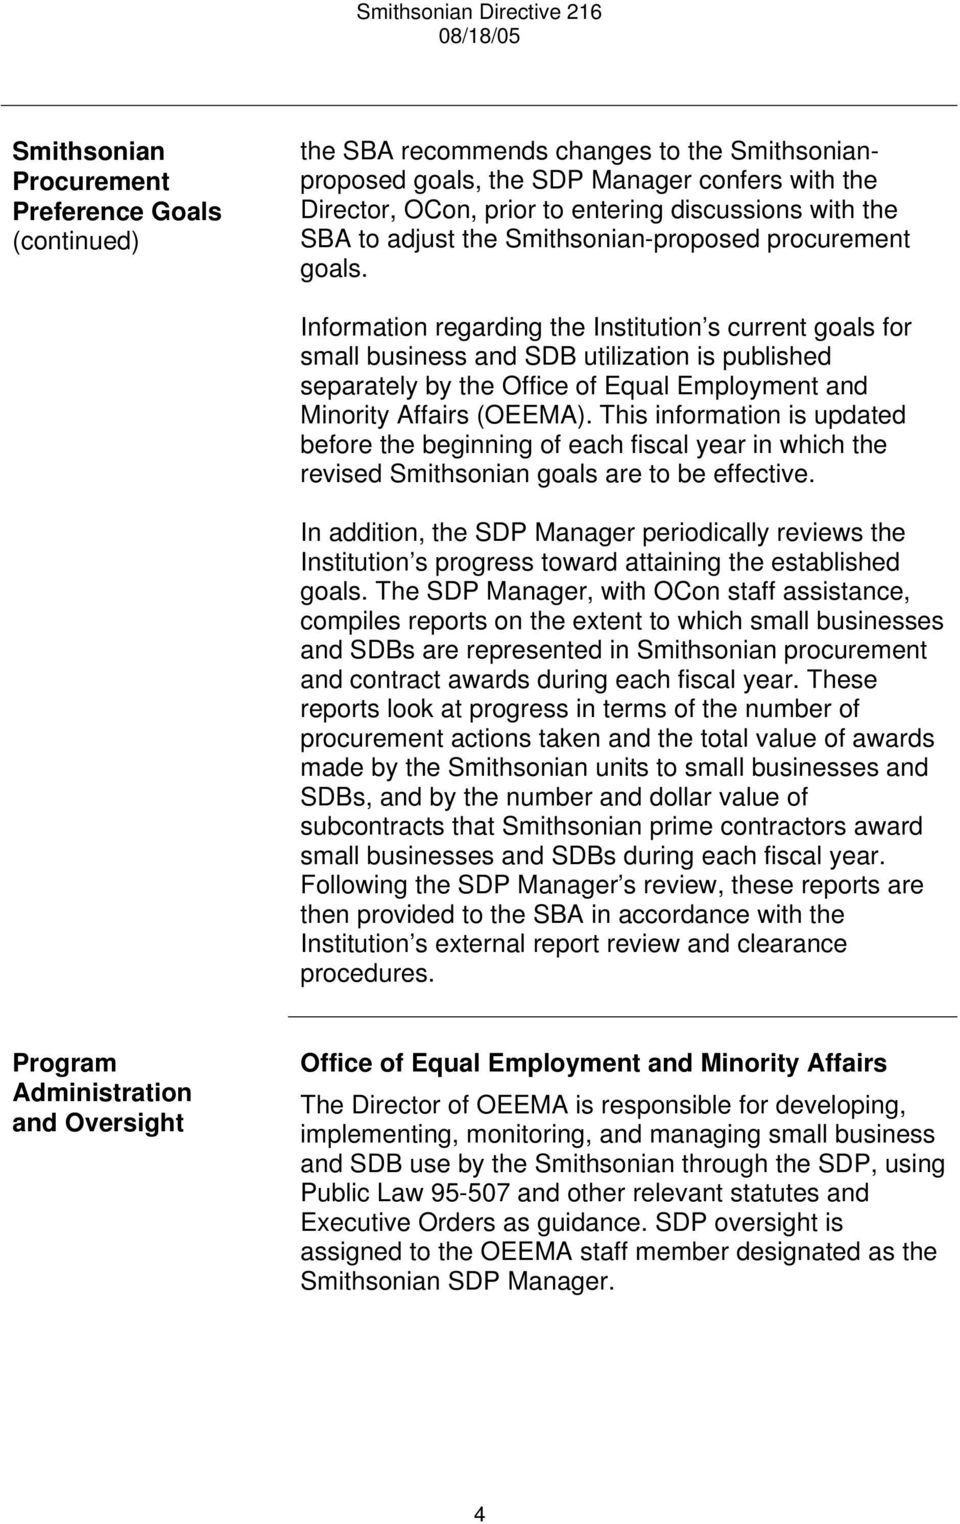 Information regarding the Institution s current goals for small business and SDB utilization is published separately by the Office of Equal Employment and Minority Affairs (OEEMA).